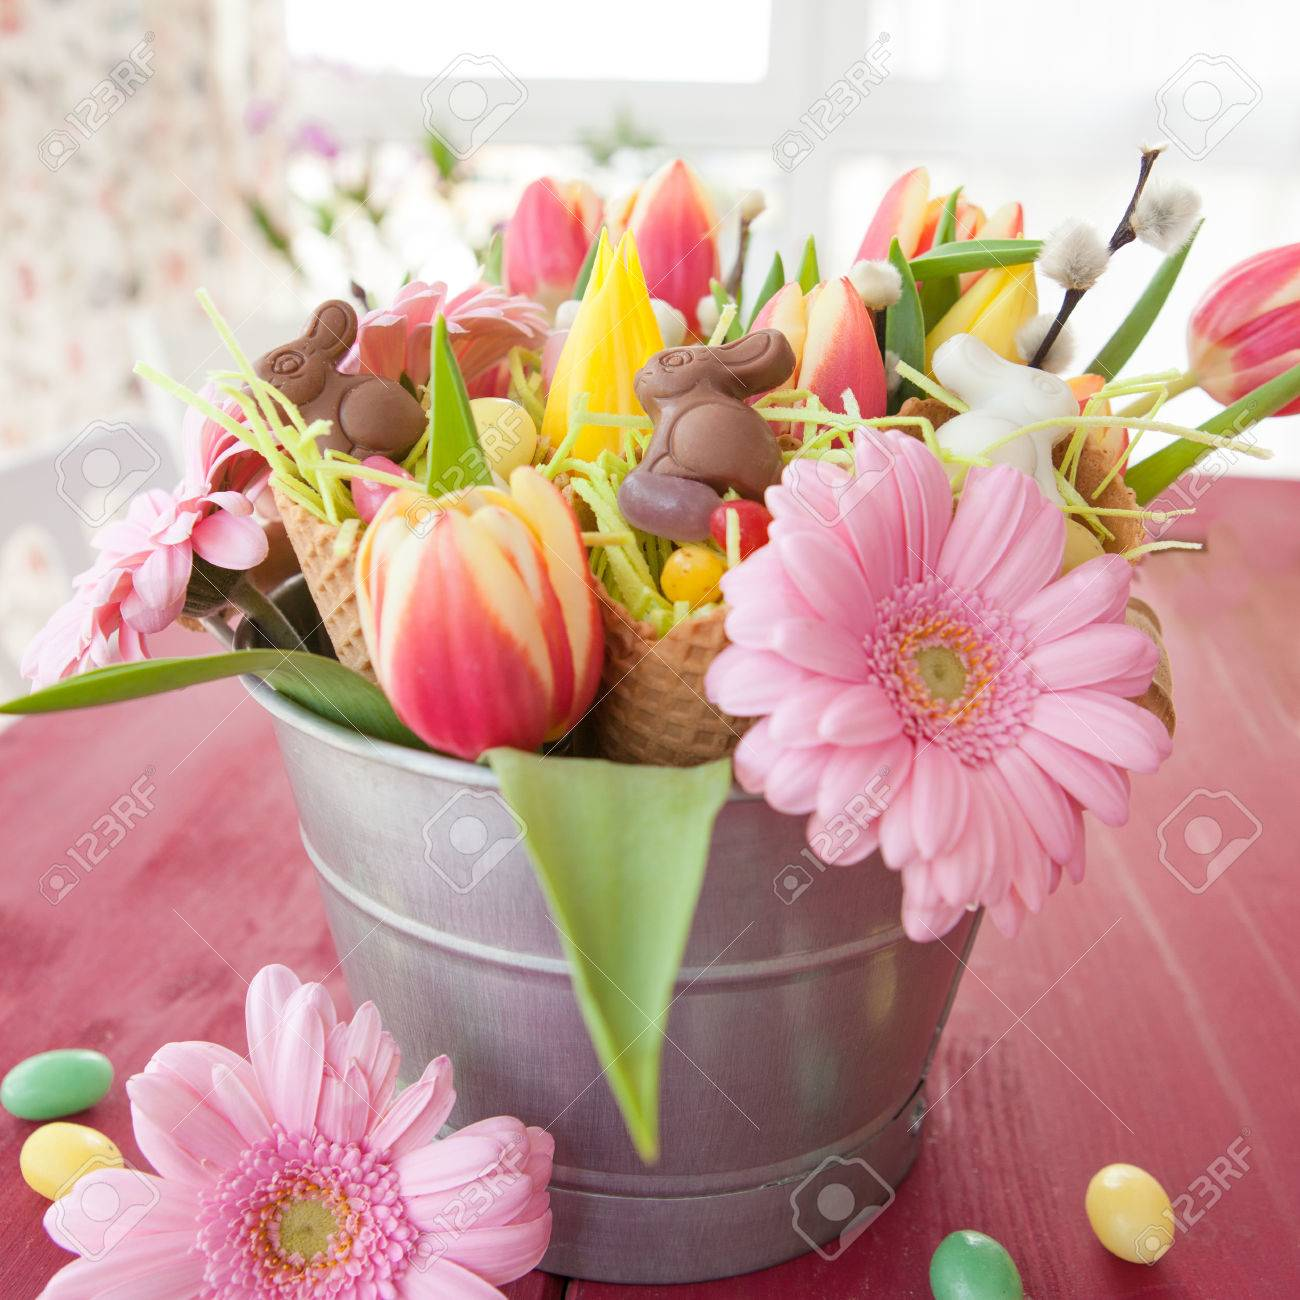 Colorful spring flowers with fun easter candy and chocolates stock colorful spring flowers with fun easter candy and chocolates stock photo 75309234 izmirmasajfo Choice Image